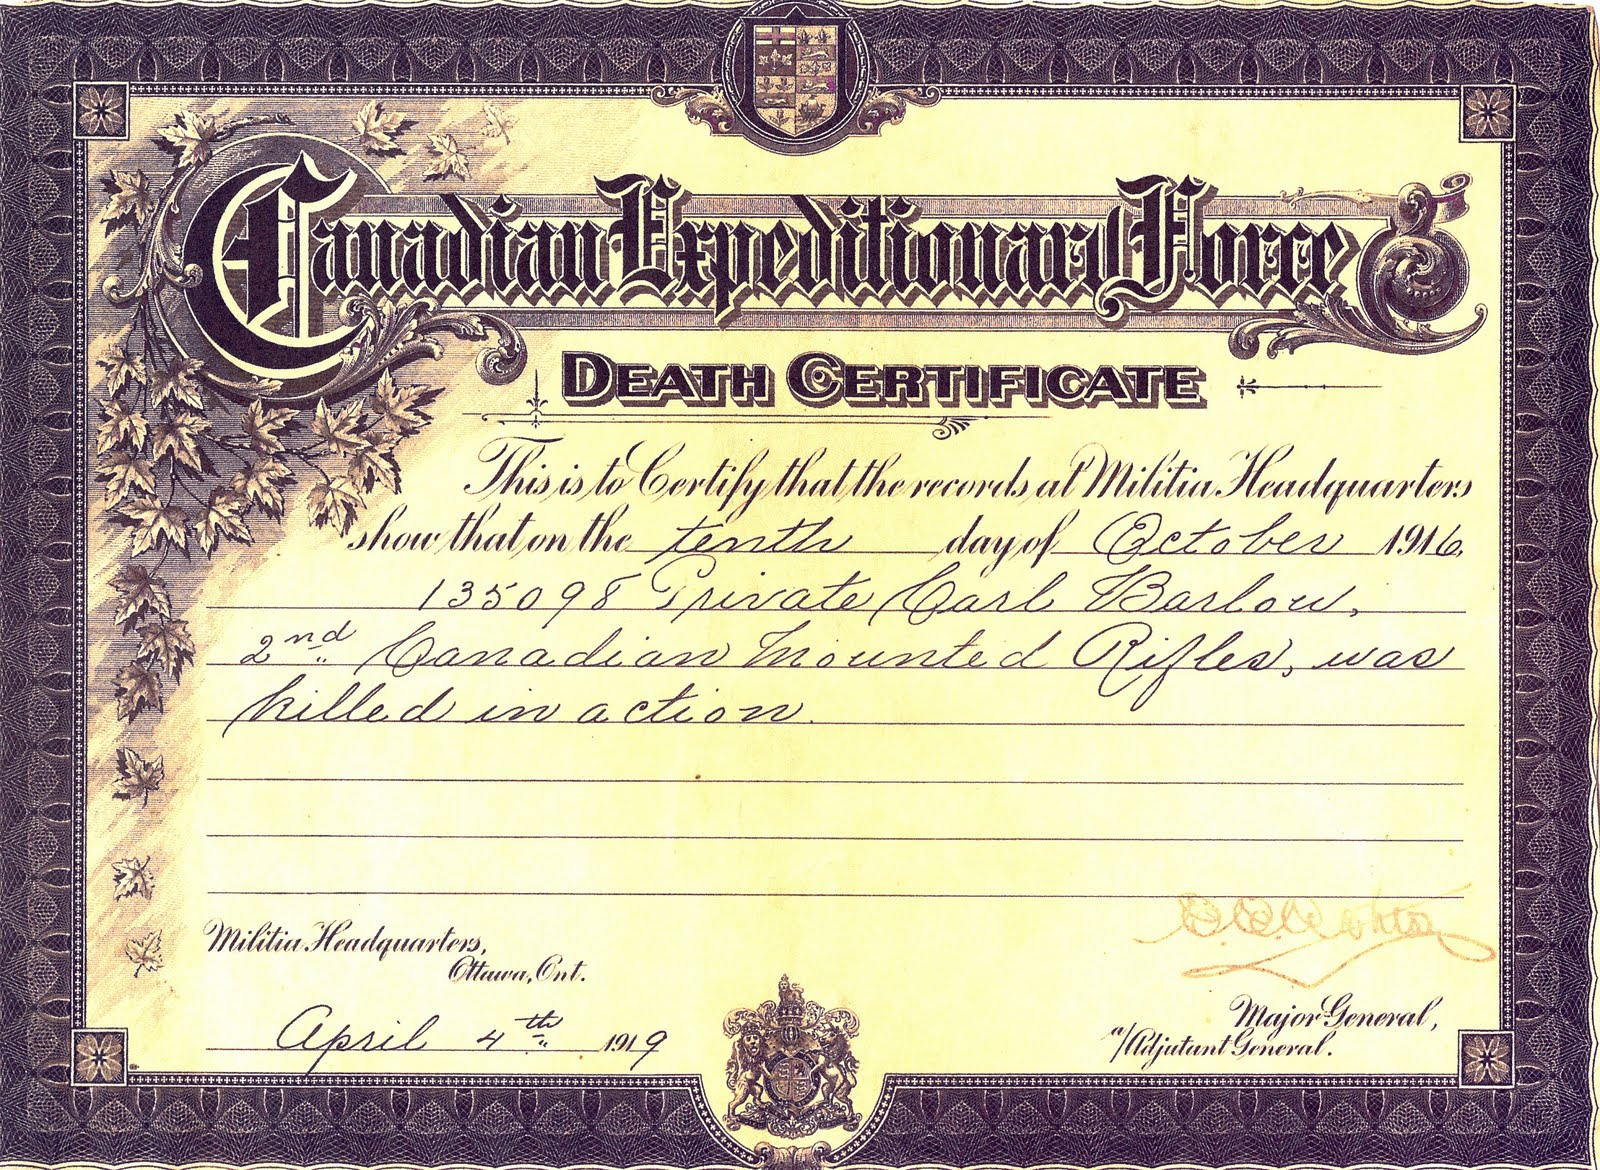 Death Certificate– Carl Barlow on left and Robert Barlow on right. Submitted for the project, Operation: Picture Me